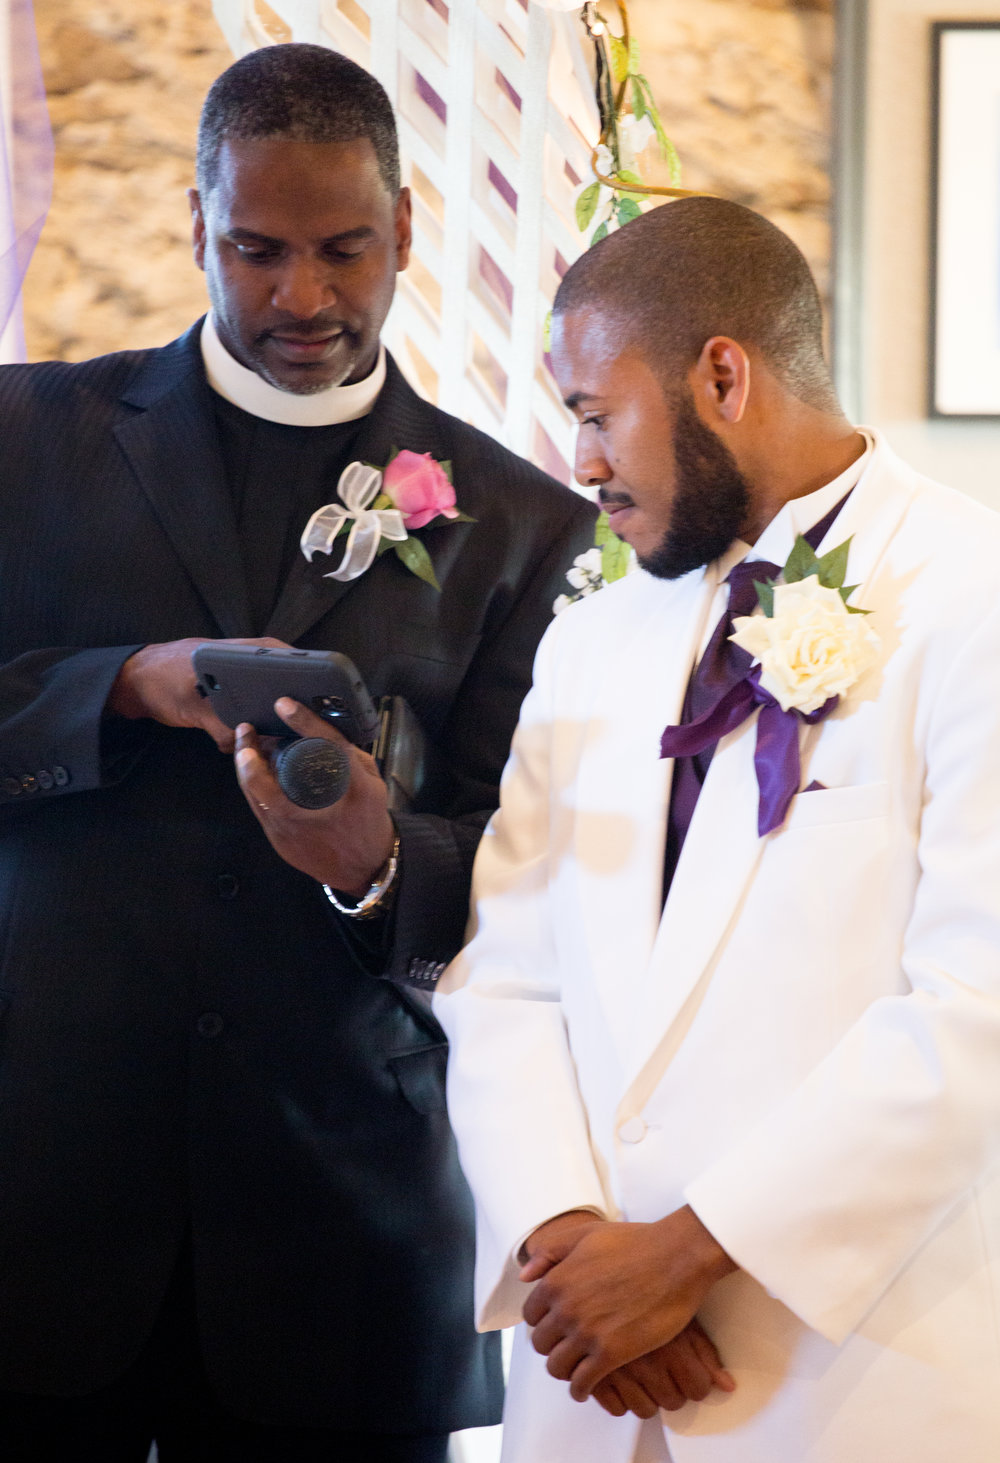 5-24-14_Errol Ebanks_The Finney Wedding_0348.jpg